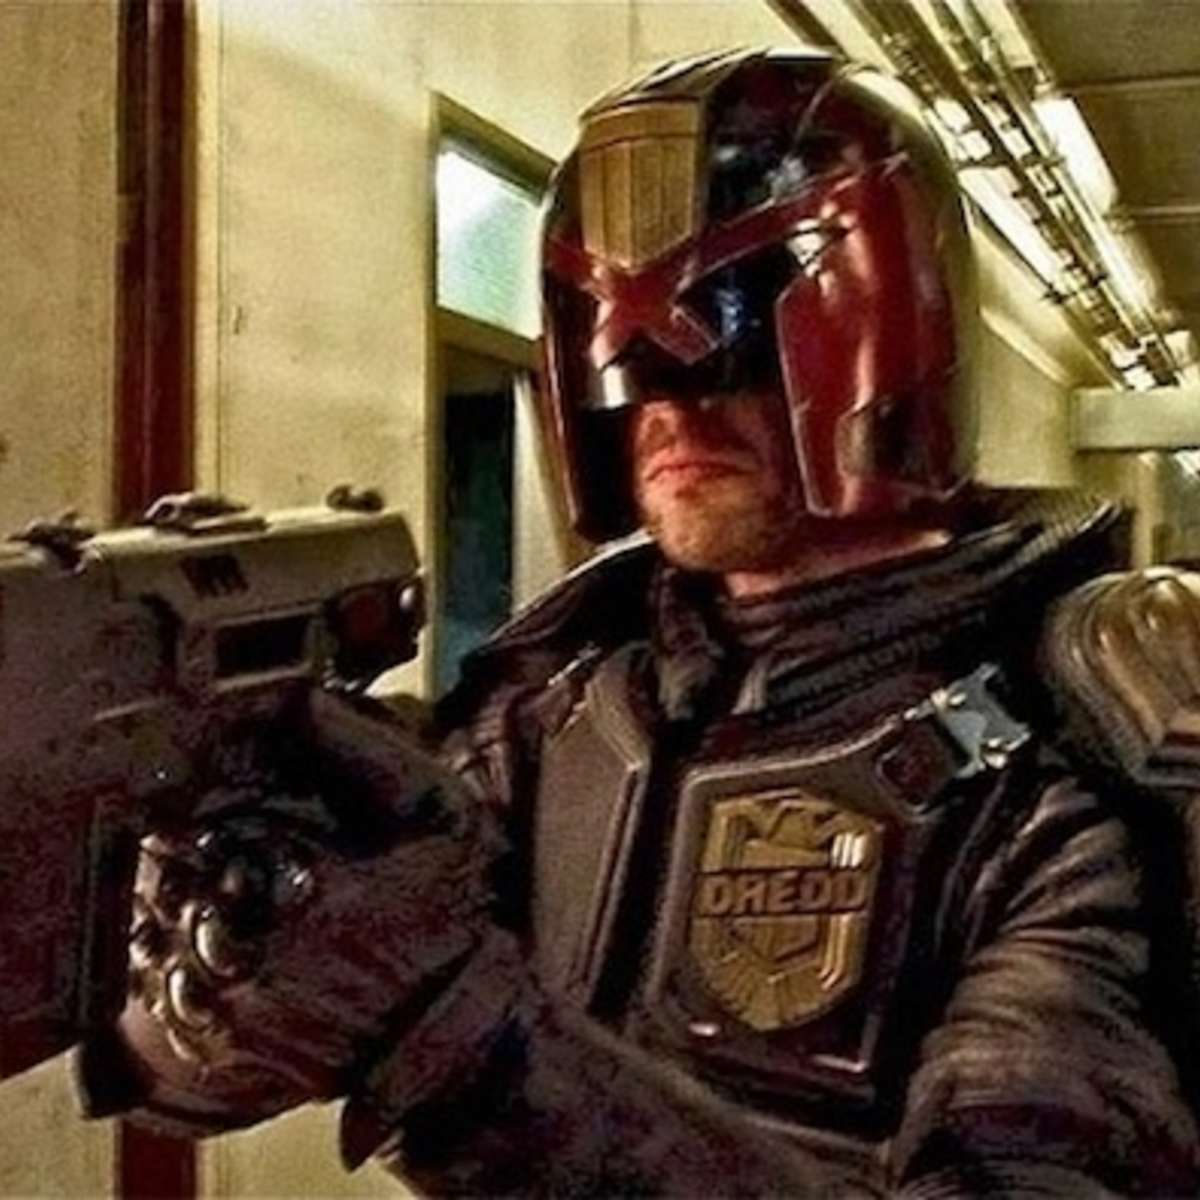 judge_dredd_karl_urban_0.jpg